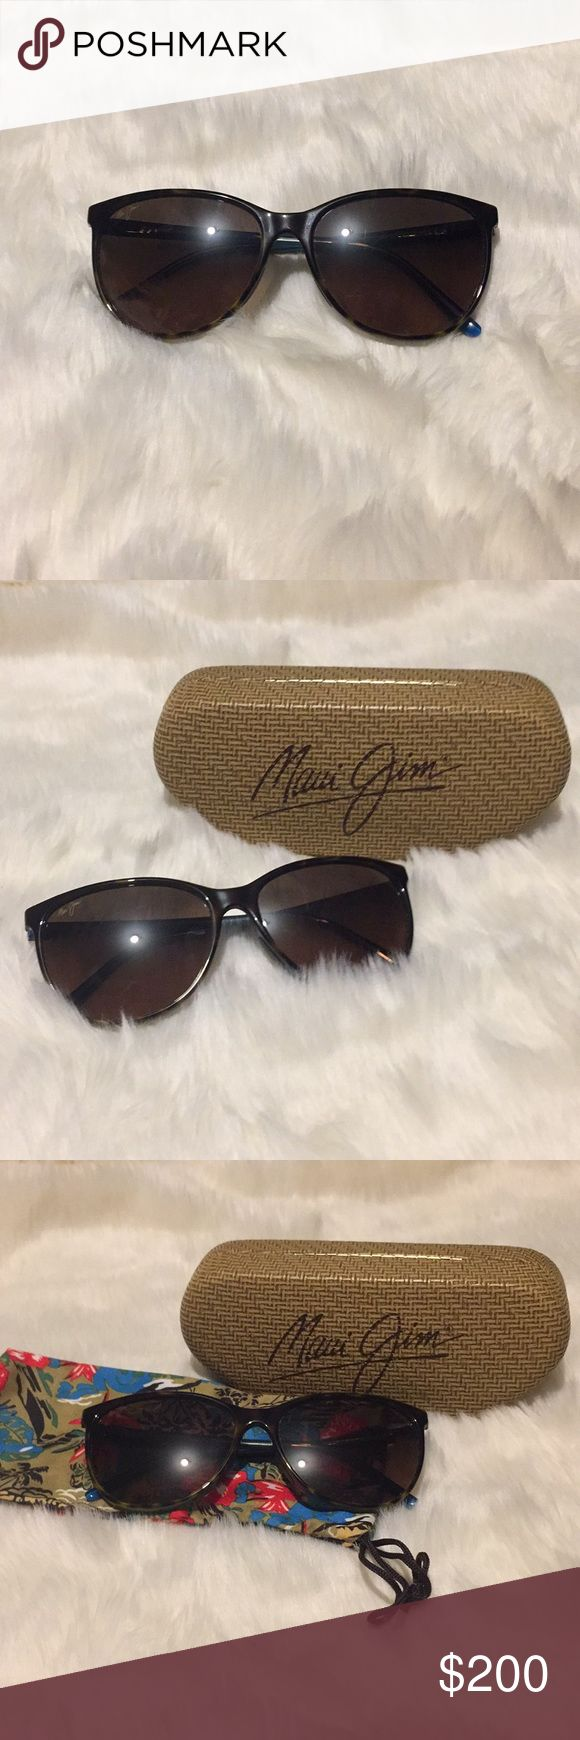 Maui Jim (Ocean) Sunglasses No scratches or damages. Comes with original case and cleaning pouch. Maui Jim Accessories Sunglasses